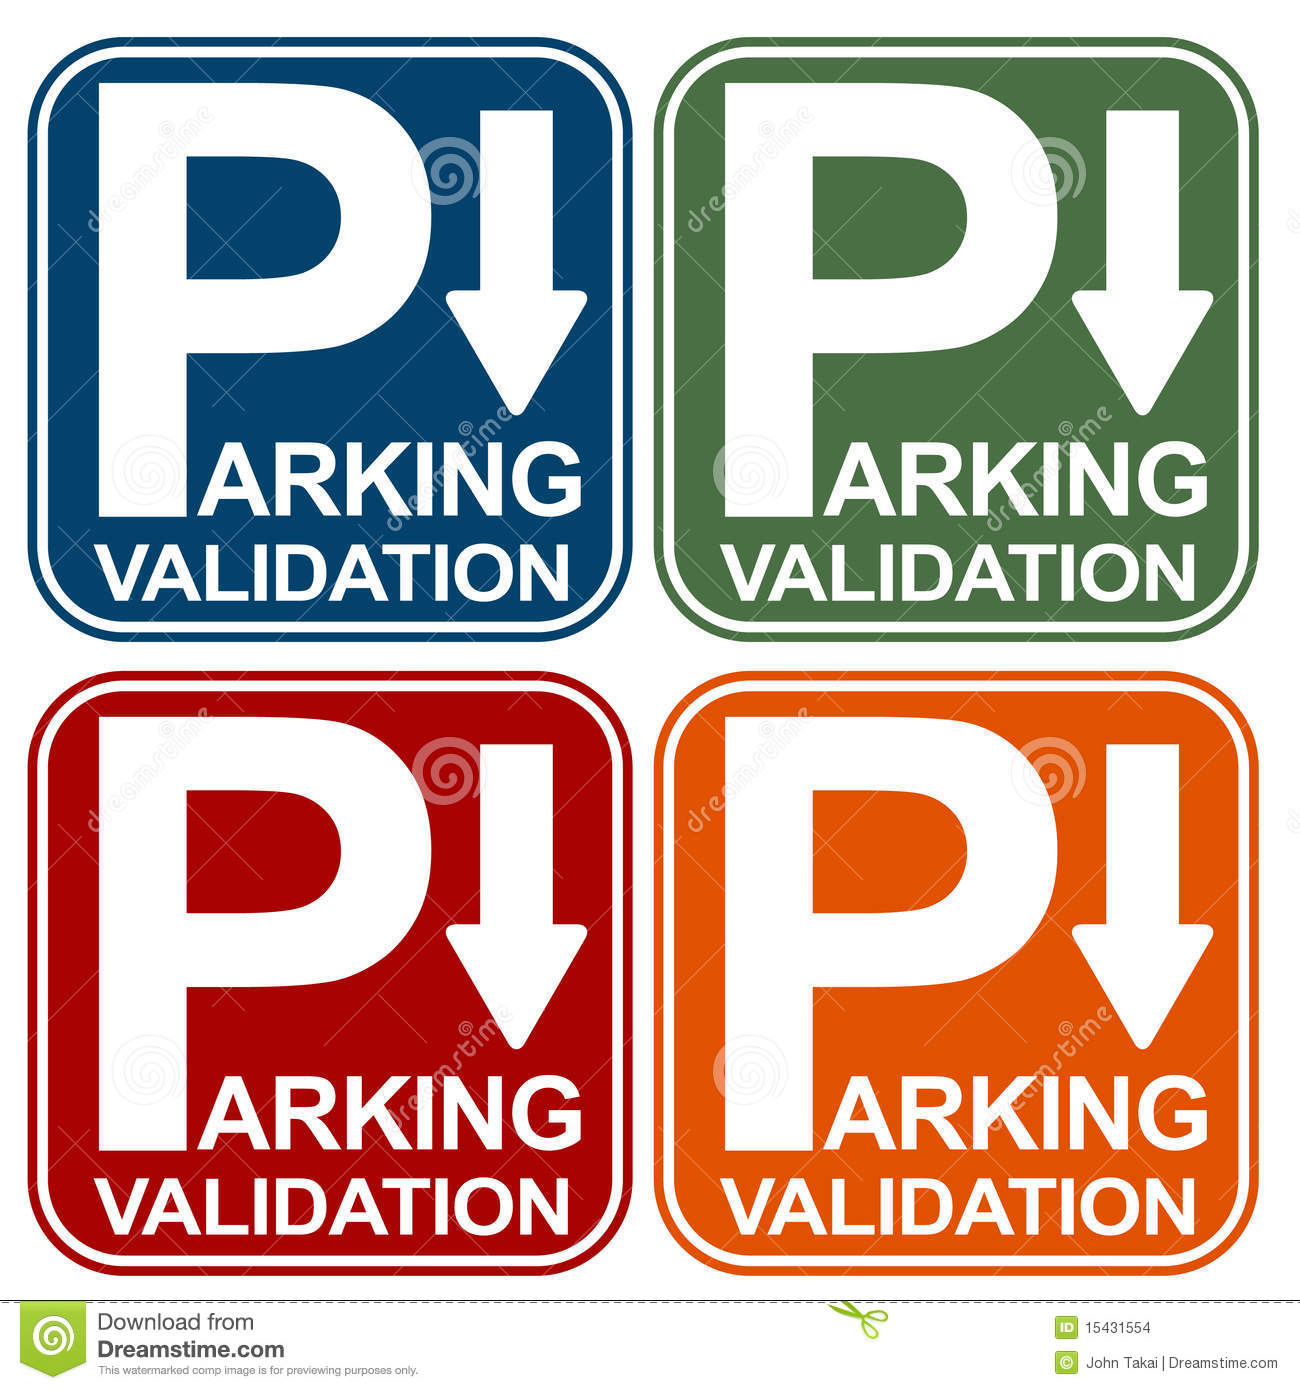 image clipart validation - photo #47